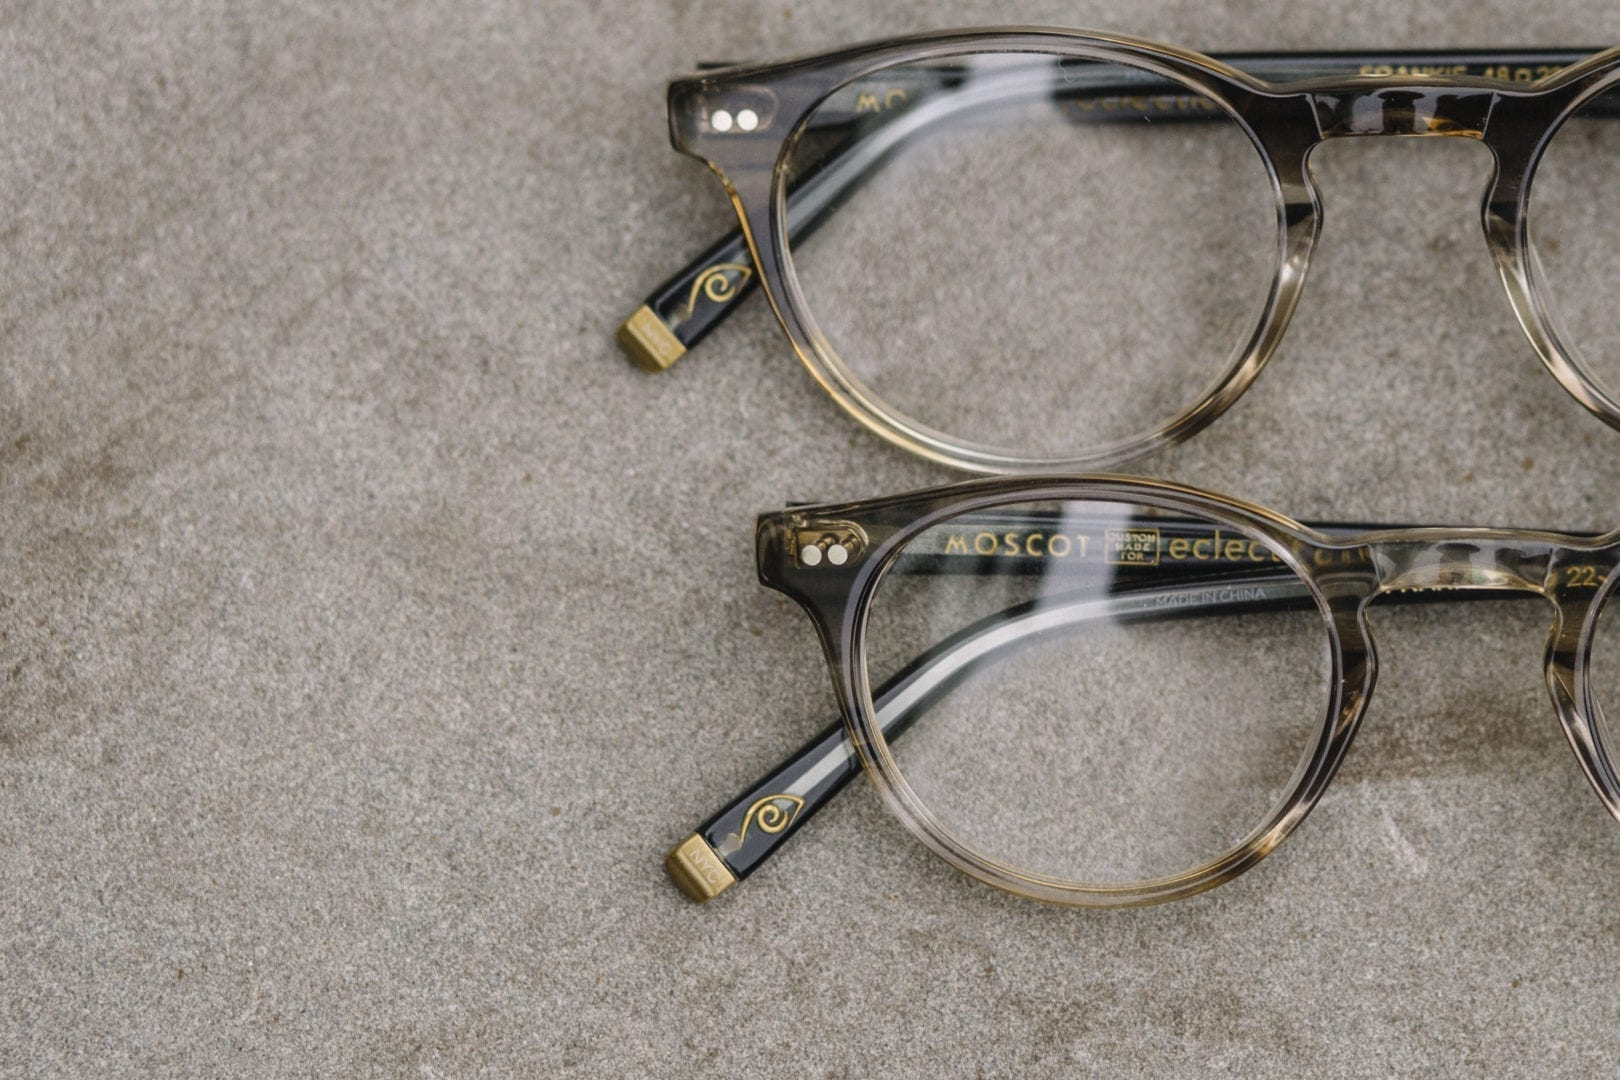 Eclectic Eye - MOSCOT collaboration frame